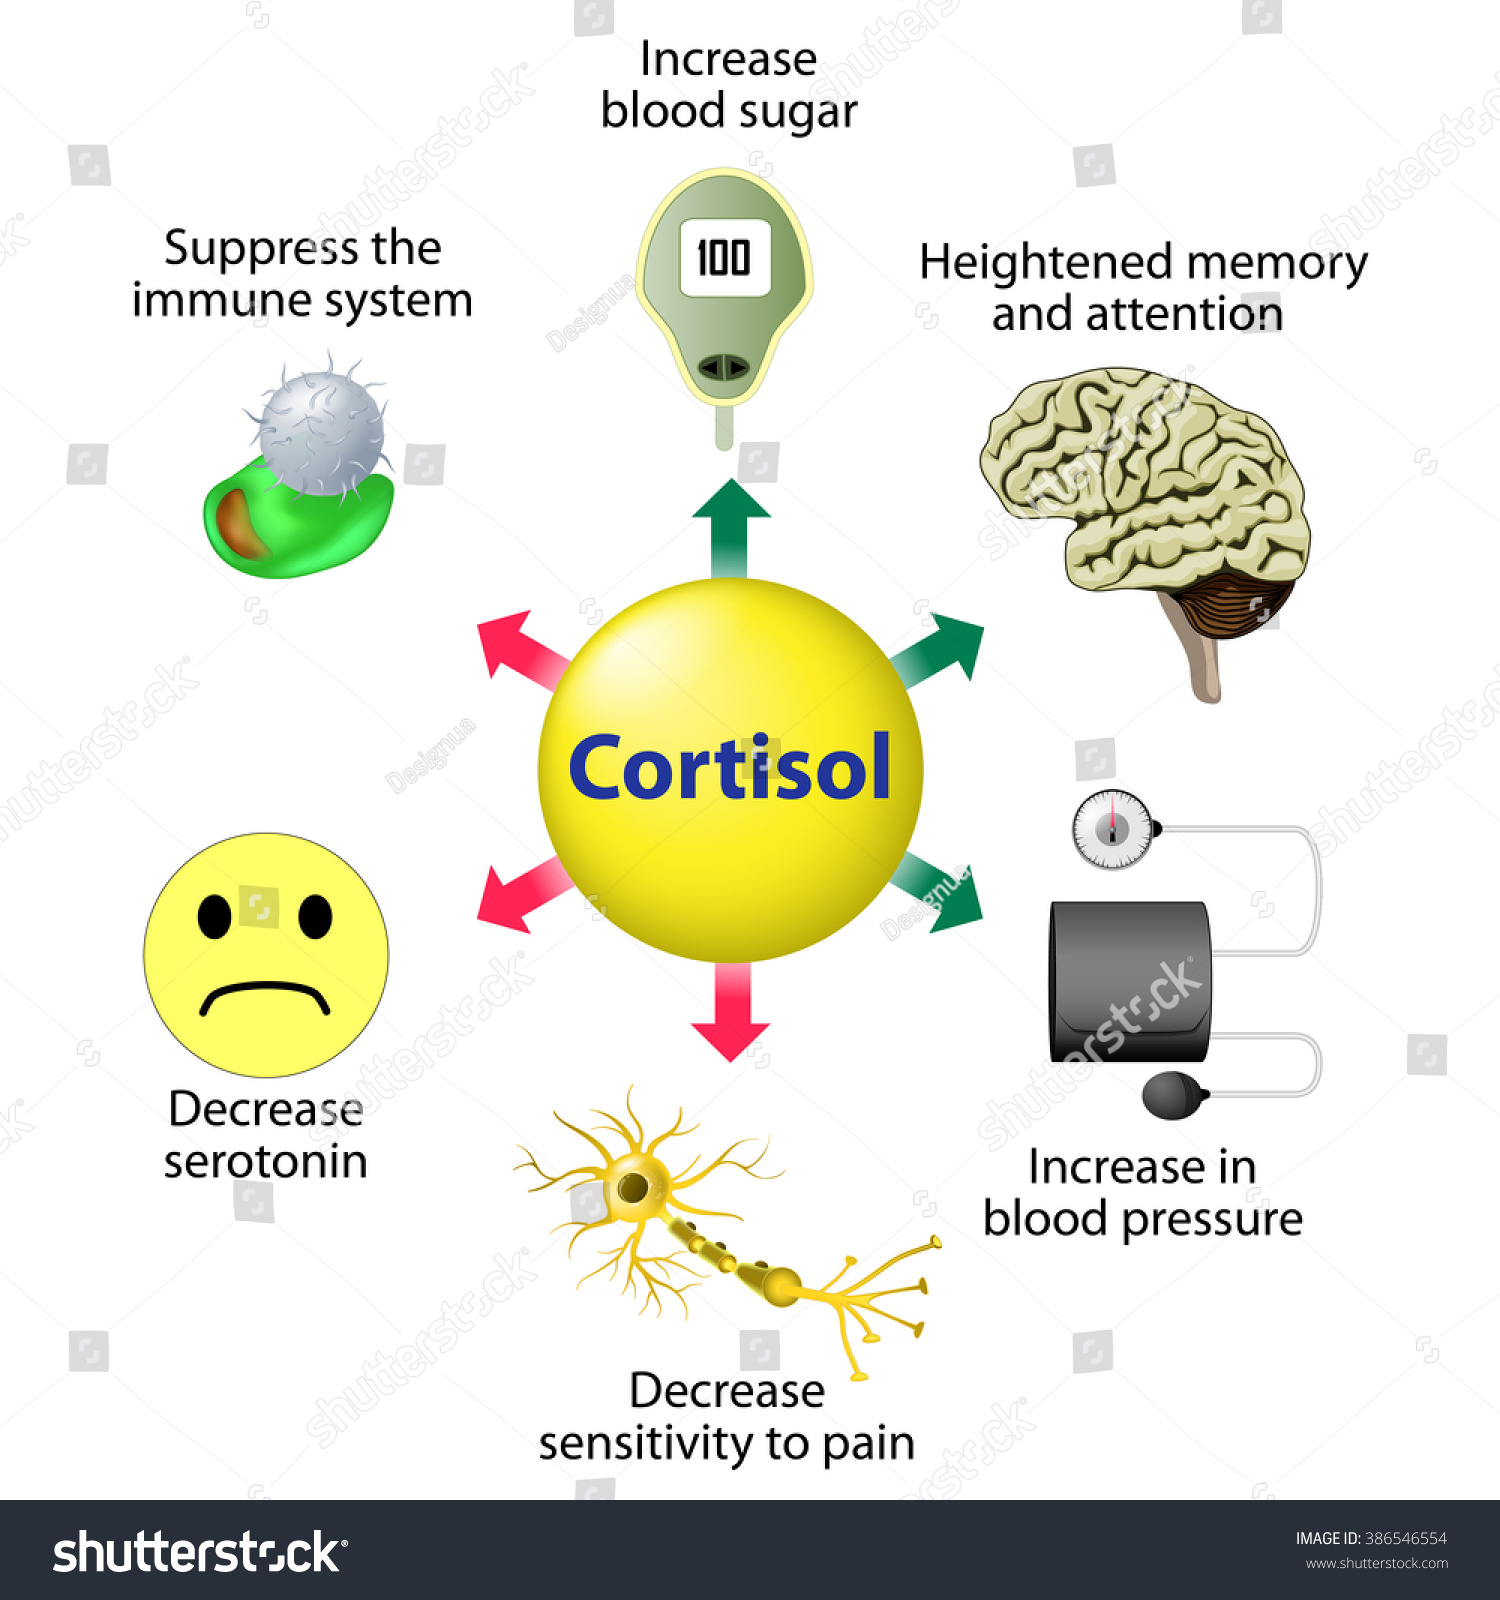 Cortisol Functions Released Response Stress Low 386546554